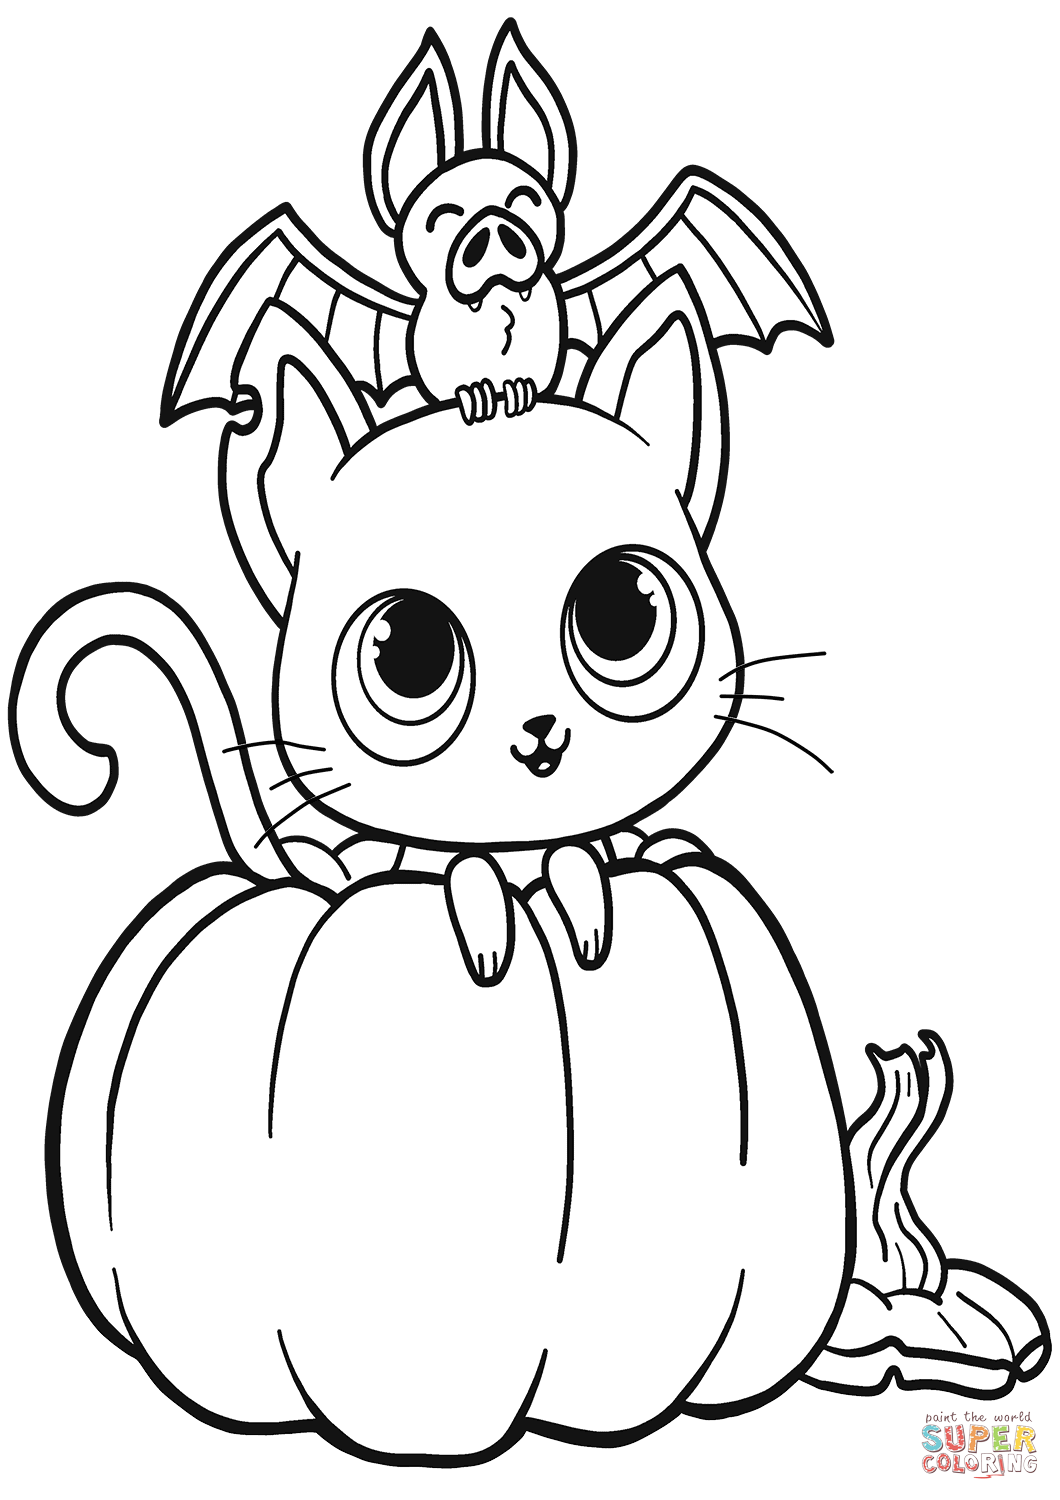 Bat Cat And Pumpkin Coloring Page Free Printable Coloring Pages Halloween Coloring Pages Halloween Coloring Pages Printable Pumpkin Coloring Pages